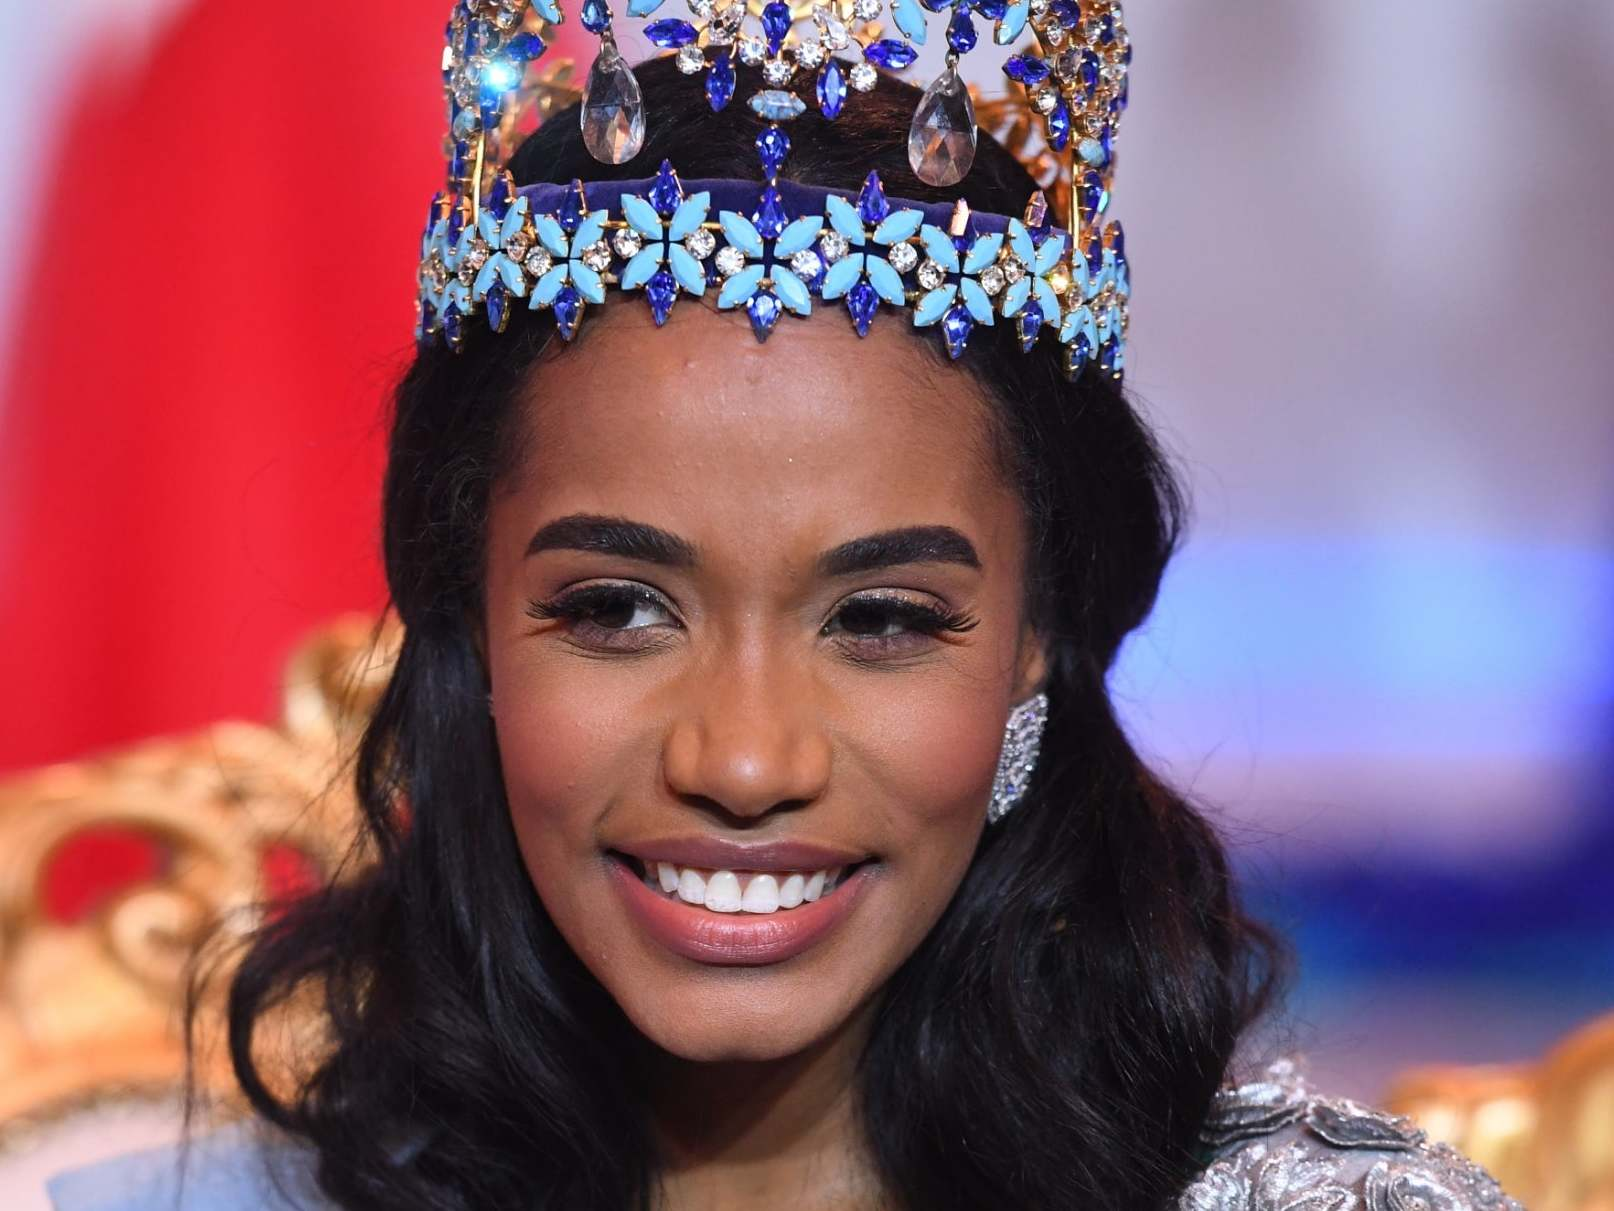 Miss Jamaica crowned Miss World 2019: 'This platform is about more than beauty'